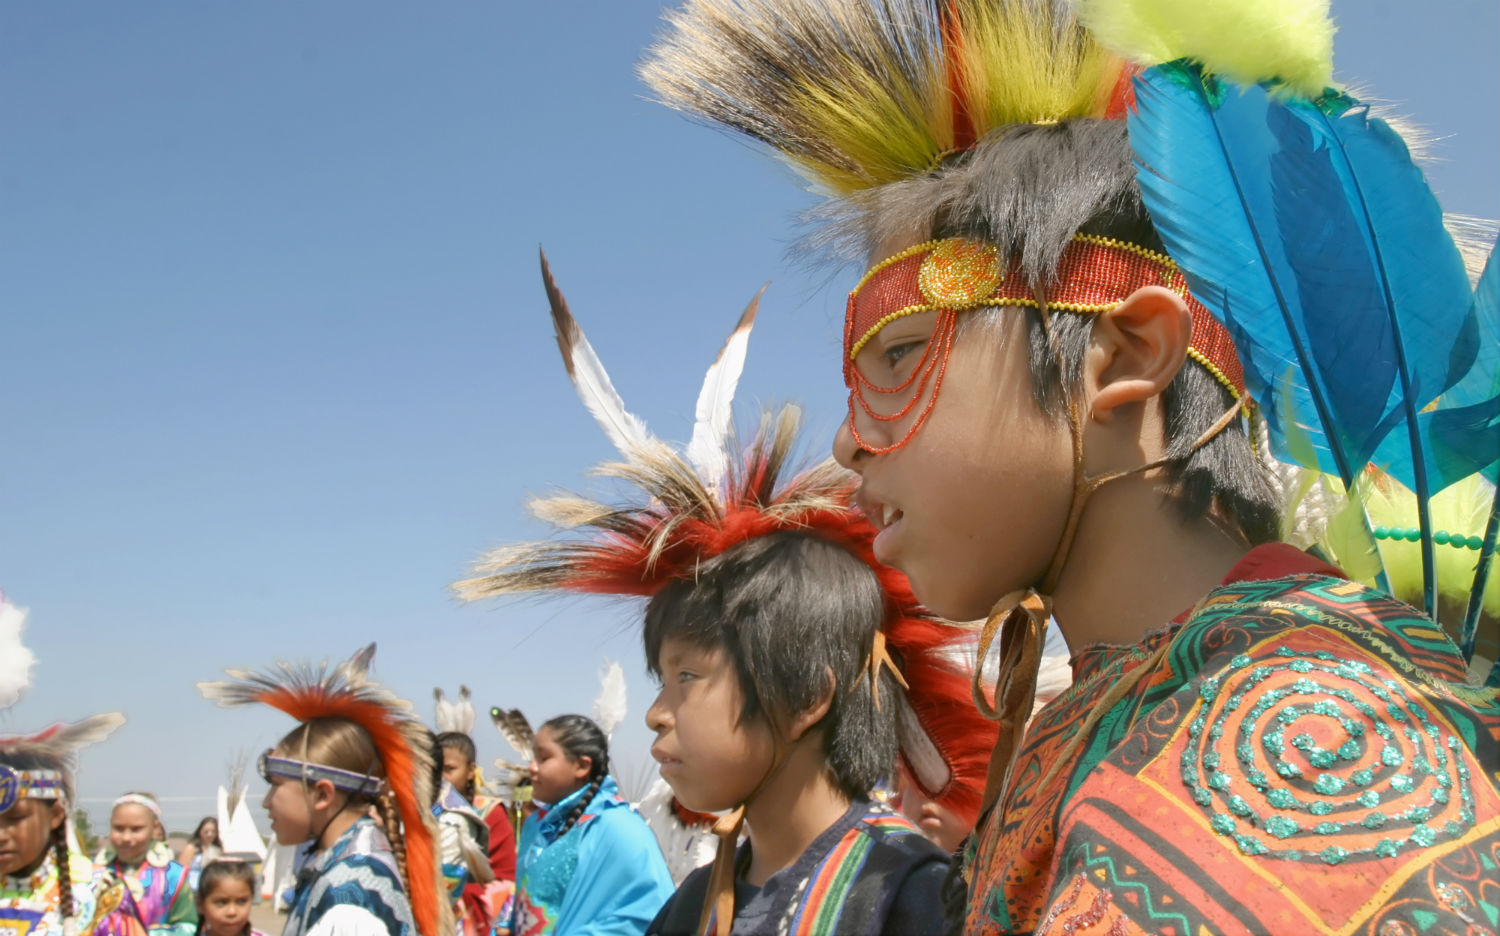 Young men wait to take part in an annual pow wow and rodeo in Toppenish, Wash. The boys are members of the Coleville and Yakama tribes.